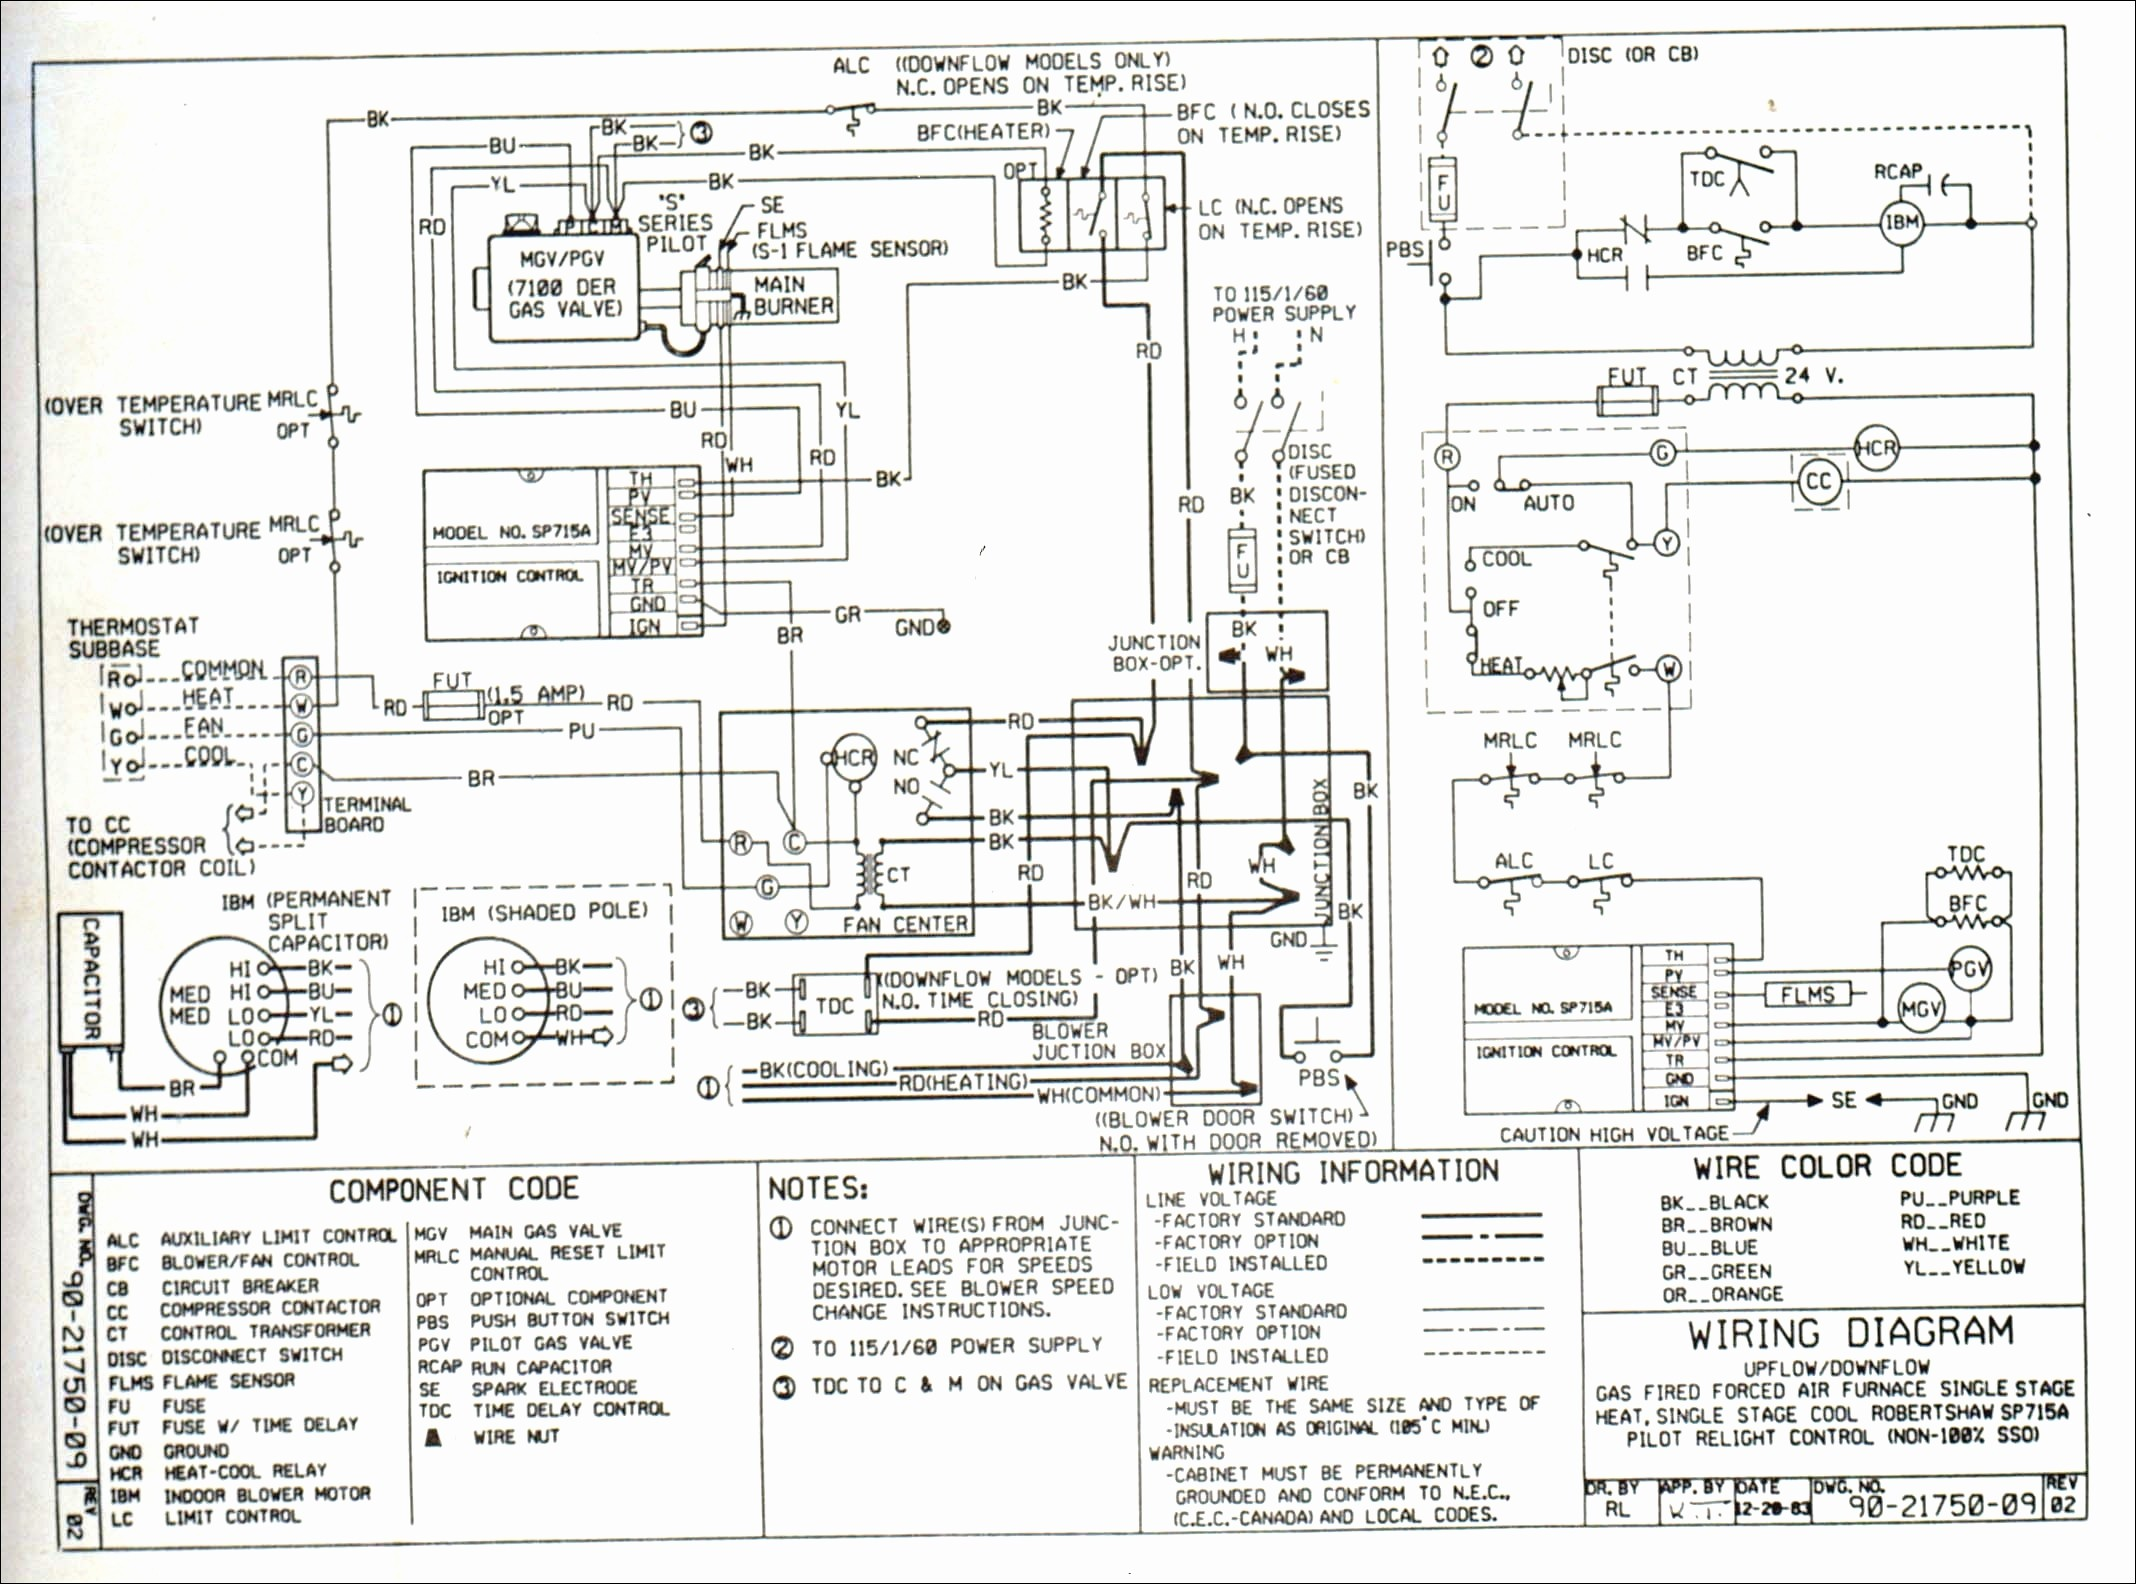 96 bounder wiring diagram fleetwood bounder wiring diagram for 1997 wiring diagram data  fleetwood bounder wiring diagram for